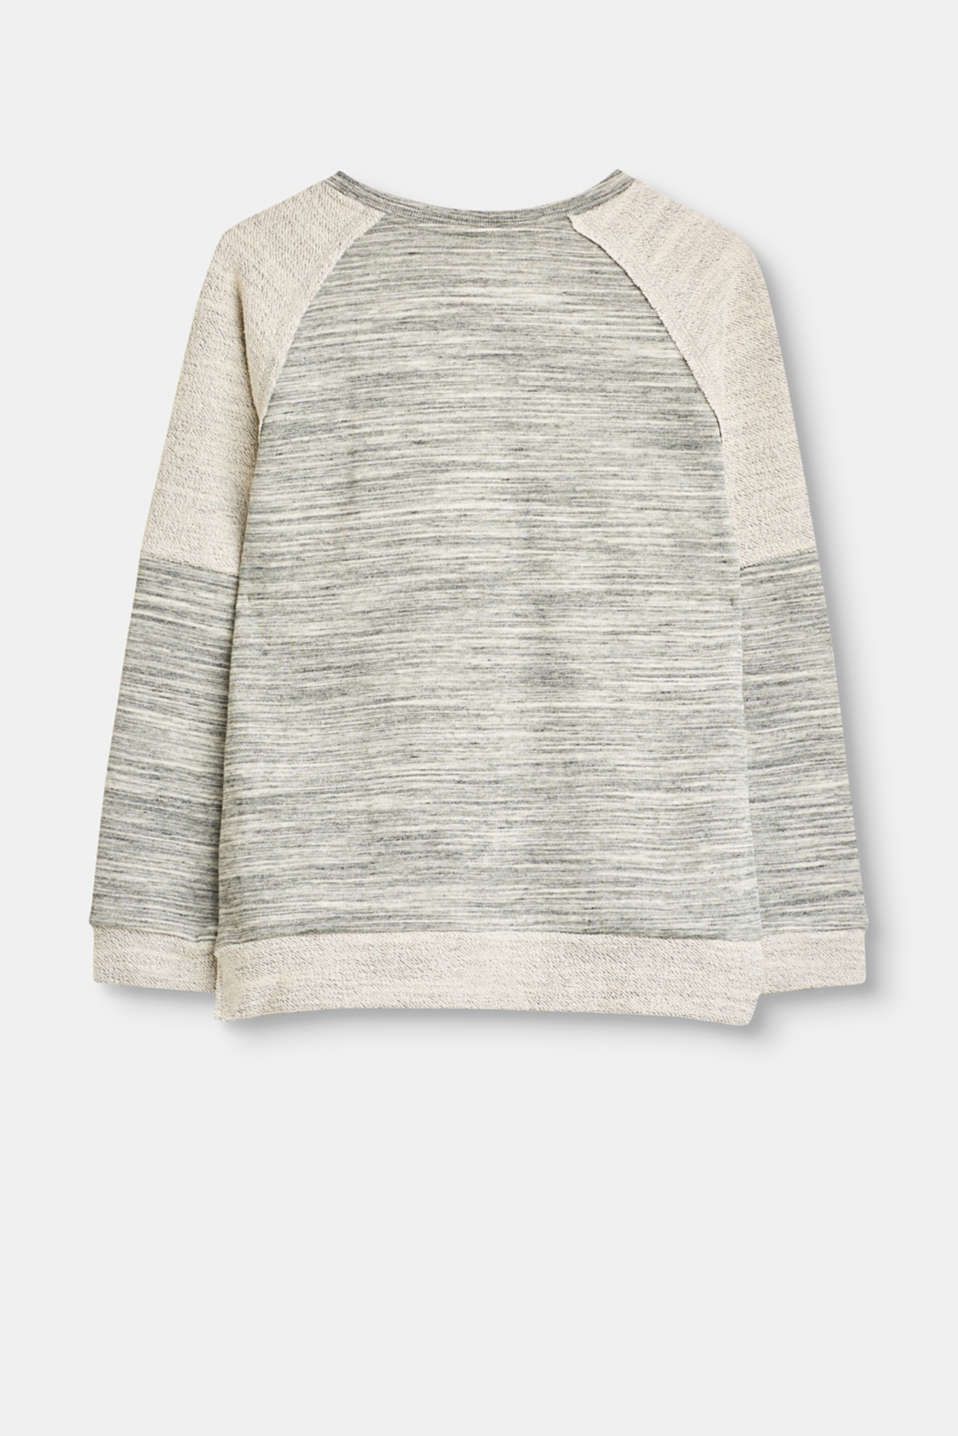 Soft sweatshirt with two types of jersey